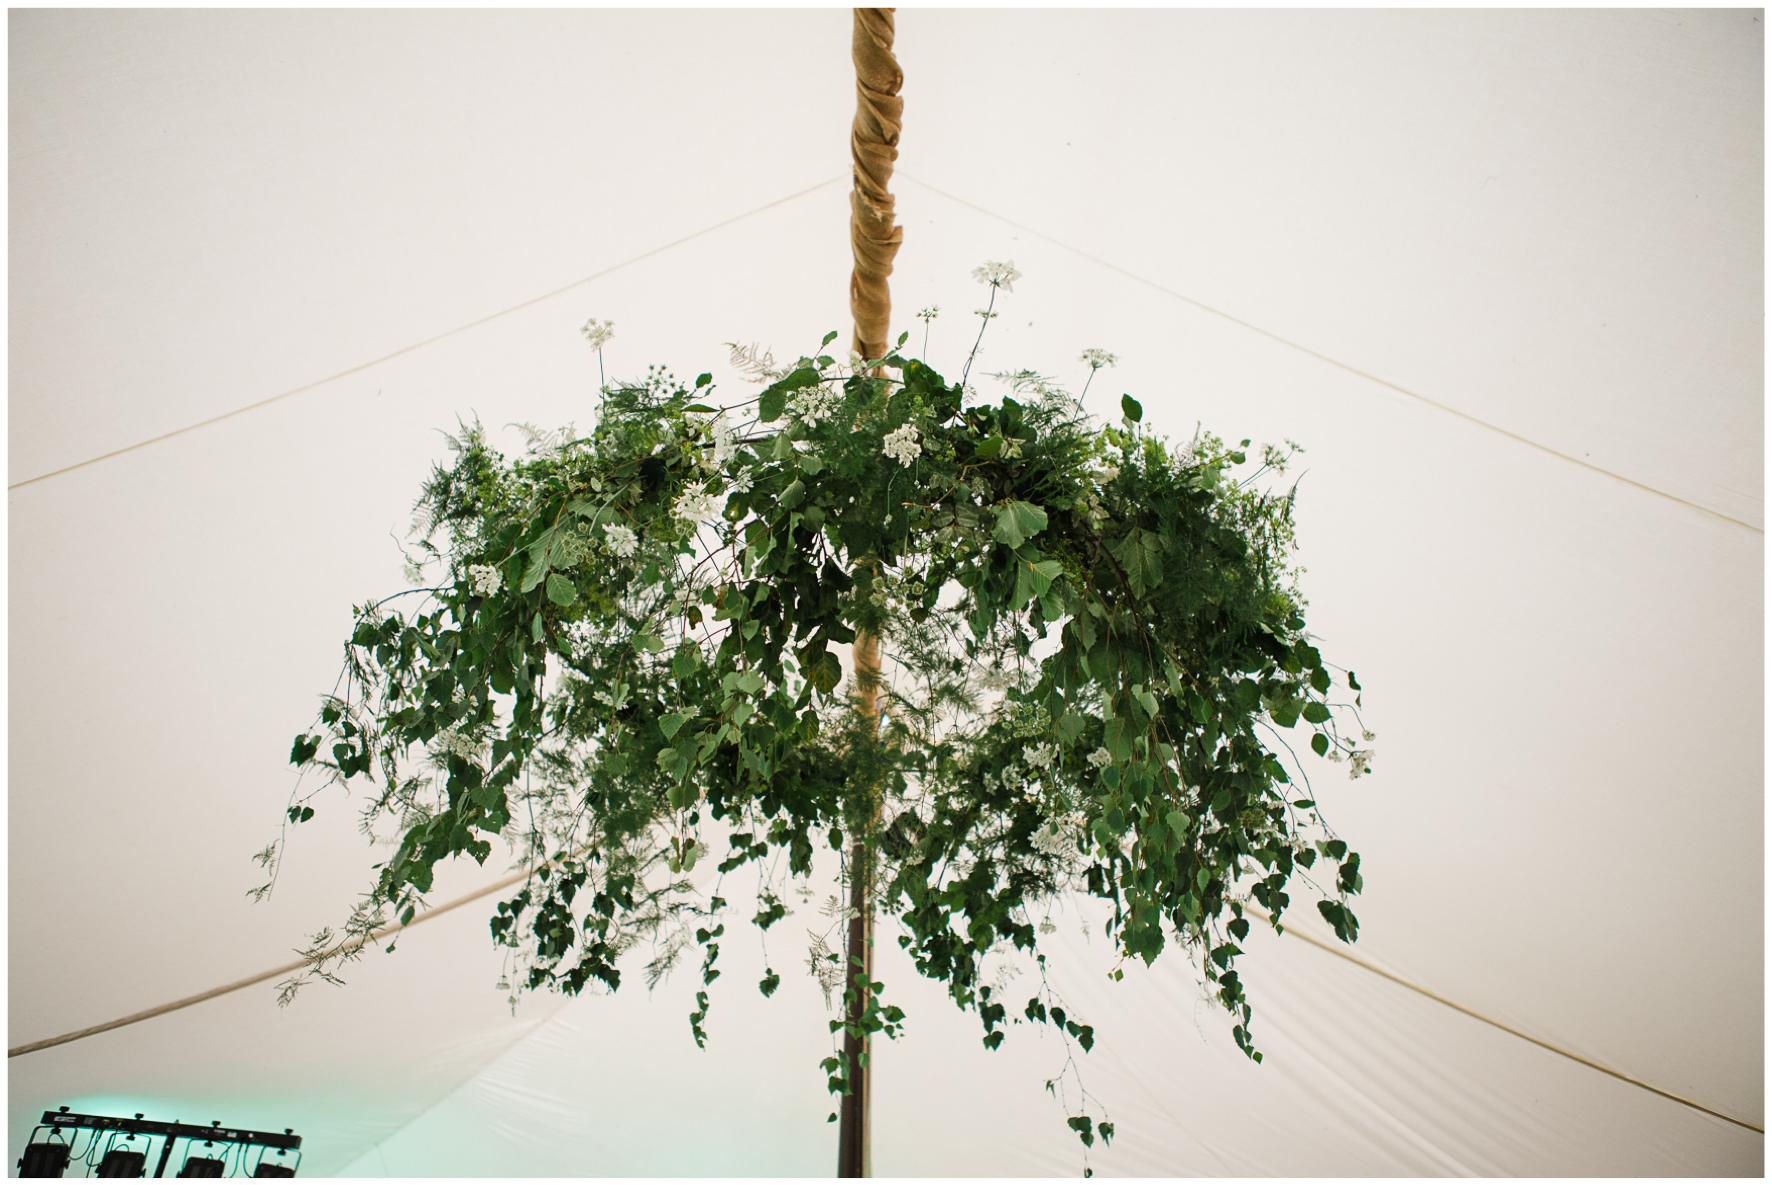 Lucy Davenport Photography, Cornwell Manor, wedding venue, Oxfordshire, Cotswold wedding, marquee, marquee wedding, wedding breakfast, suspended florals